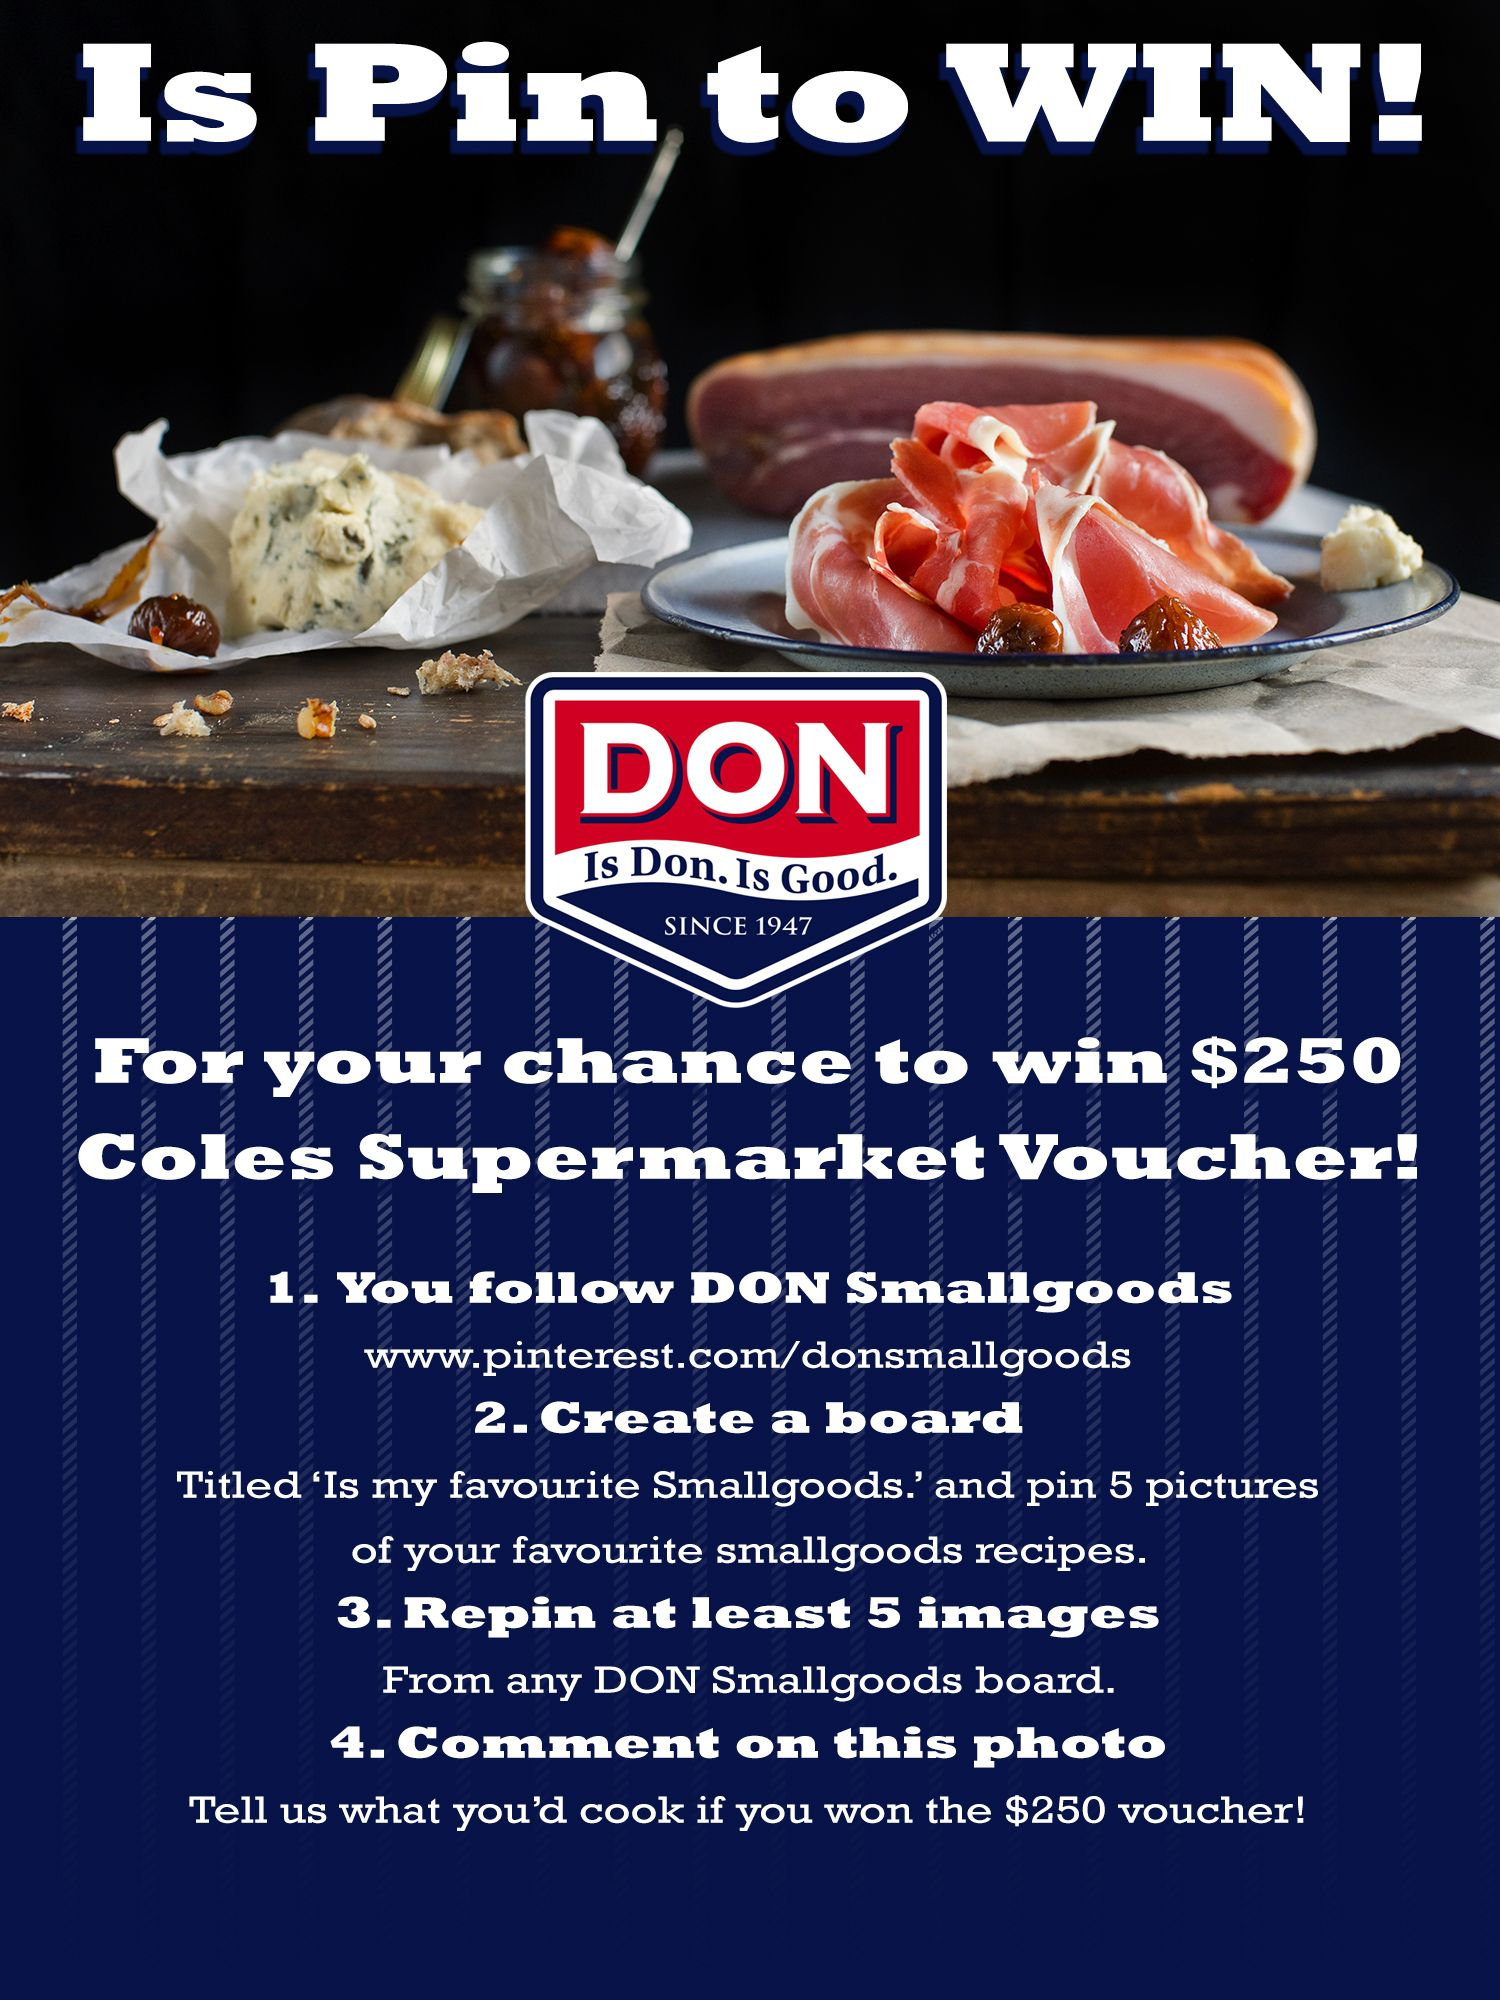 You have to PIN it to WIN it! Do be entering, is $250 supermarket voucher up for grabs!  Is terms and conditions: http://bit.ly/DONPinToWinTCs